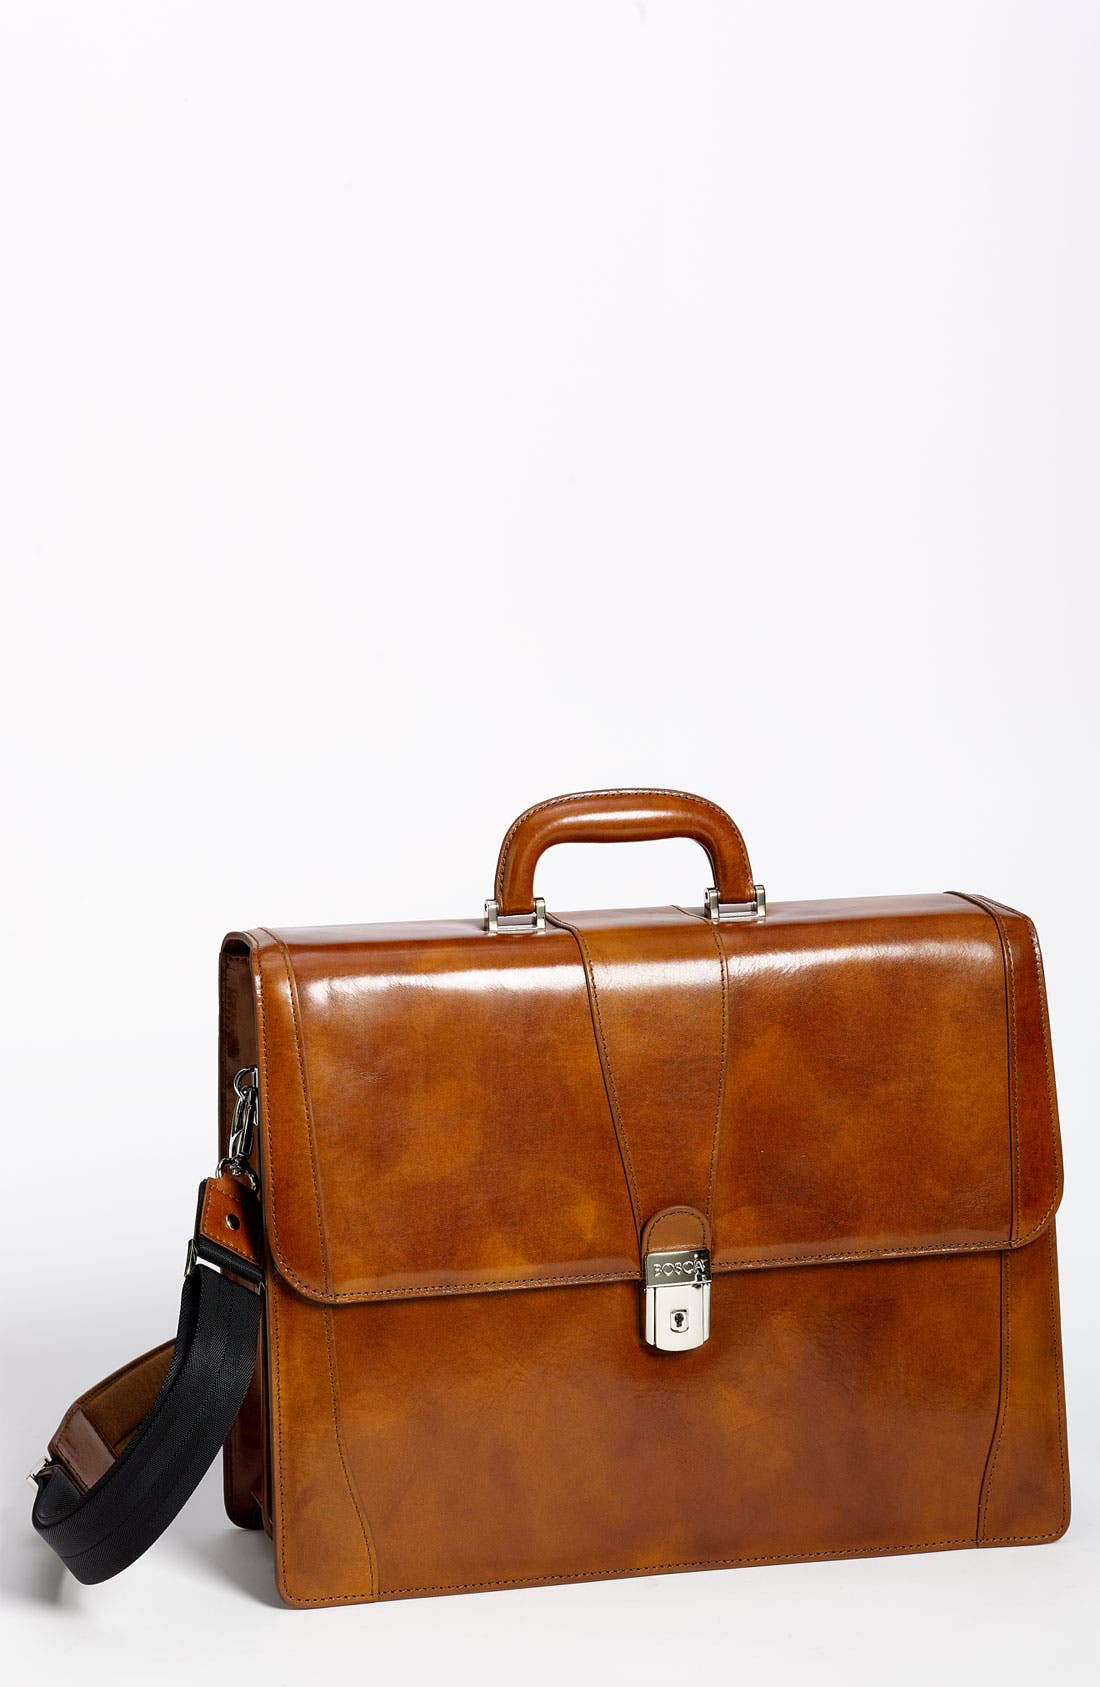 The Bosca Double Gusset Briefcase